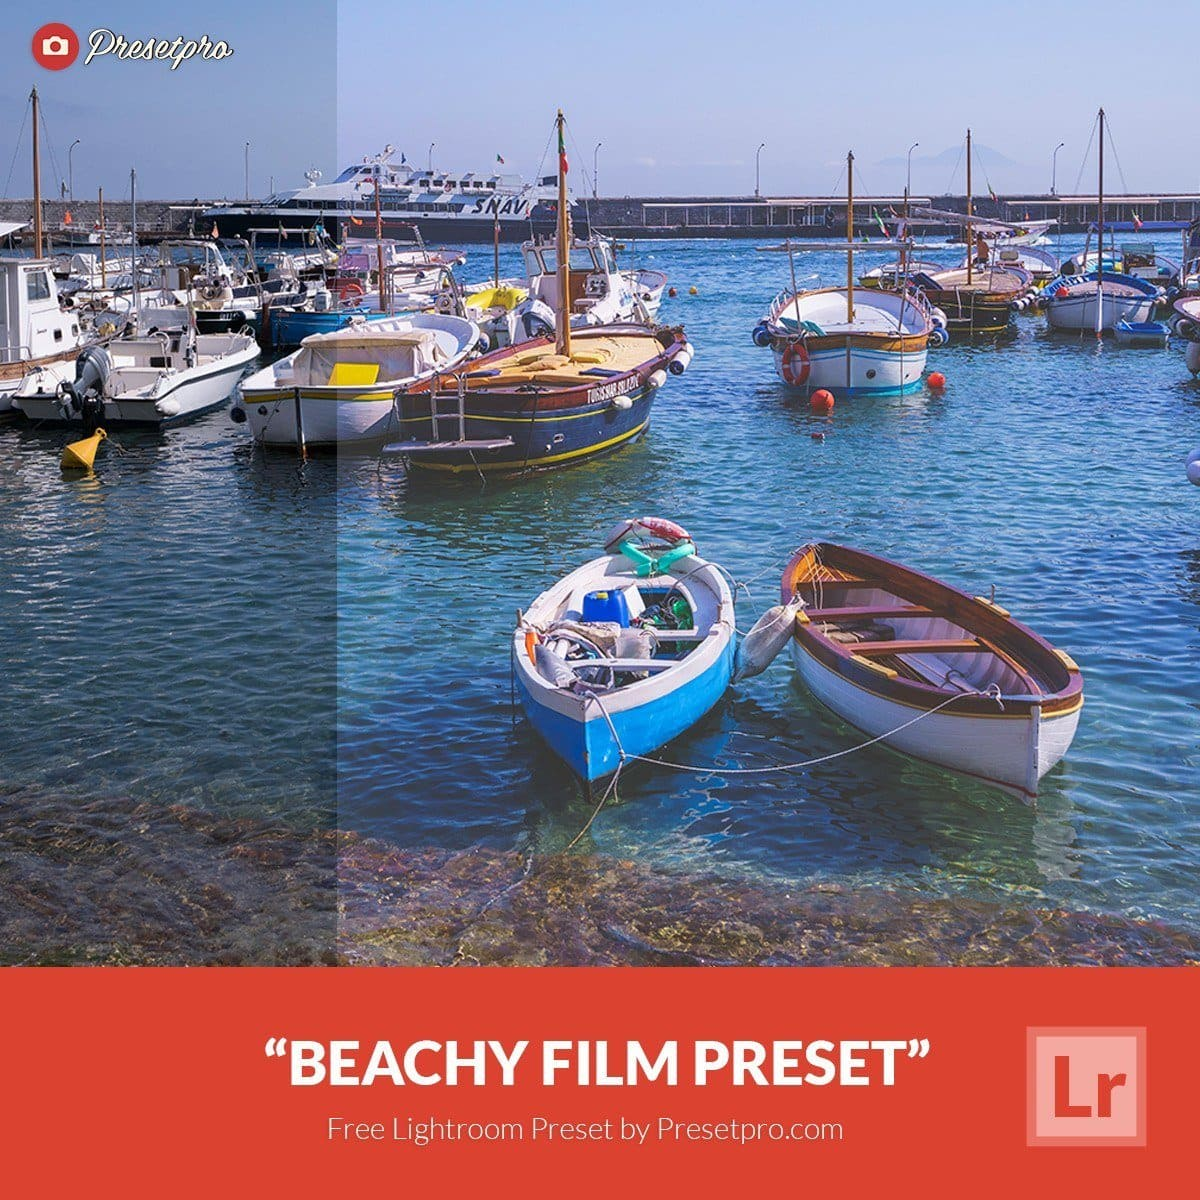 Free-Lightroom-Preset-Beachy-Film-Presetpro